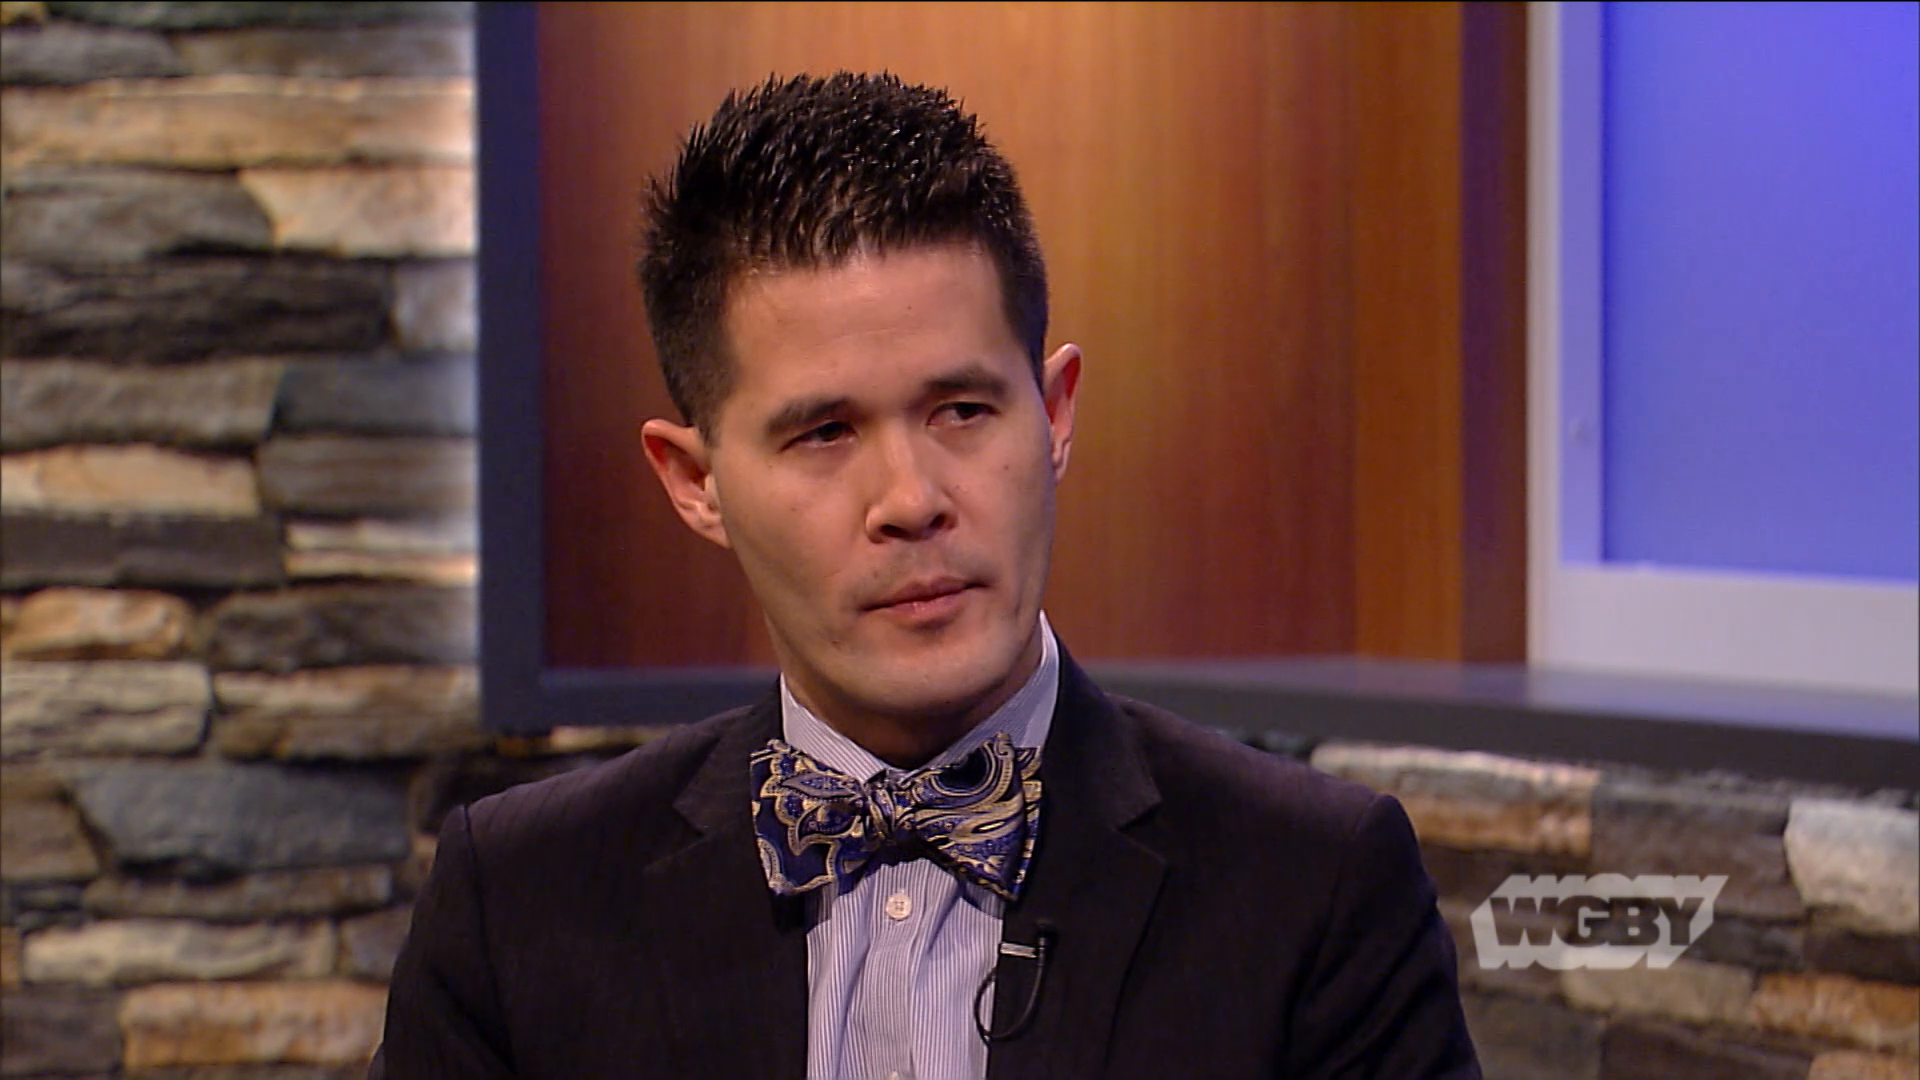 Professor David Chin talks about a UMass combat brain injury study, showing soldiers with brain injuries are are at greater risk of mental health disorders.